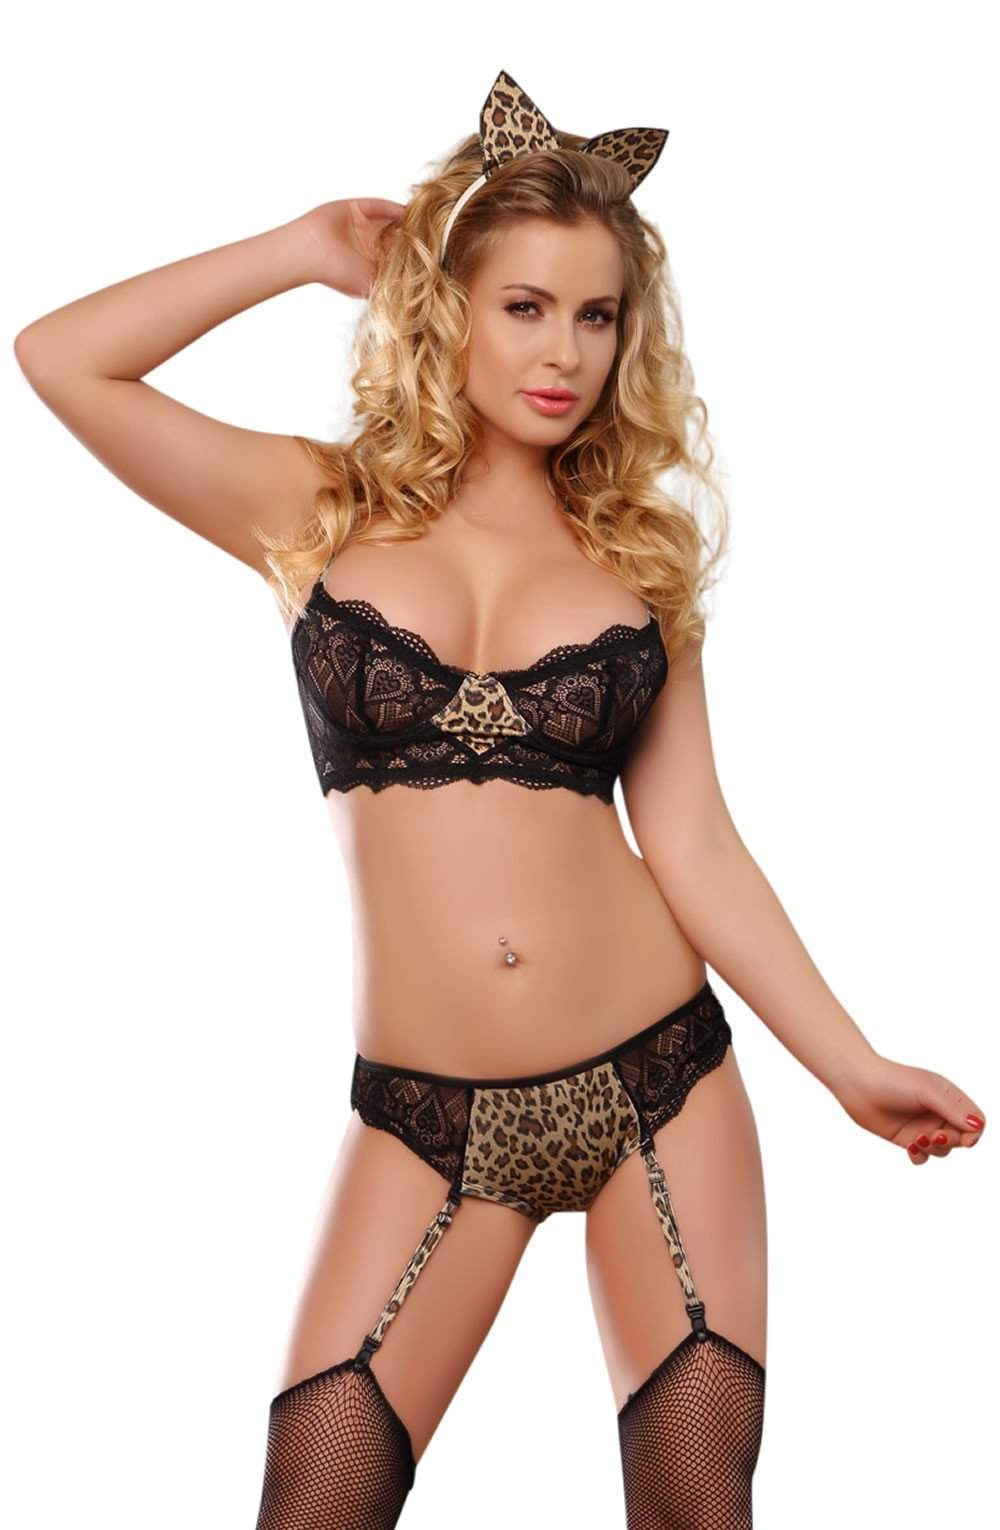 YesX YX143 Leopard / Black / Animal Print - YesX - Katys Boutique Lingerie USA